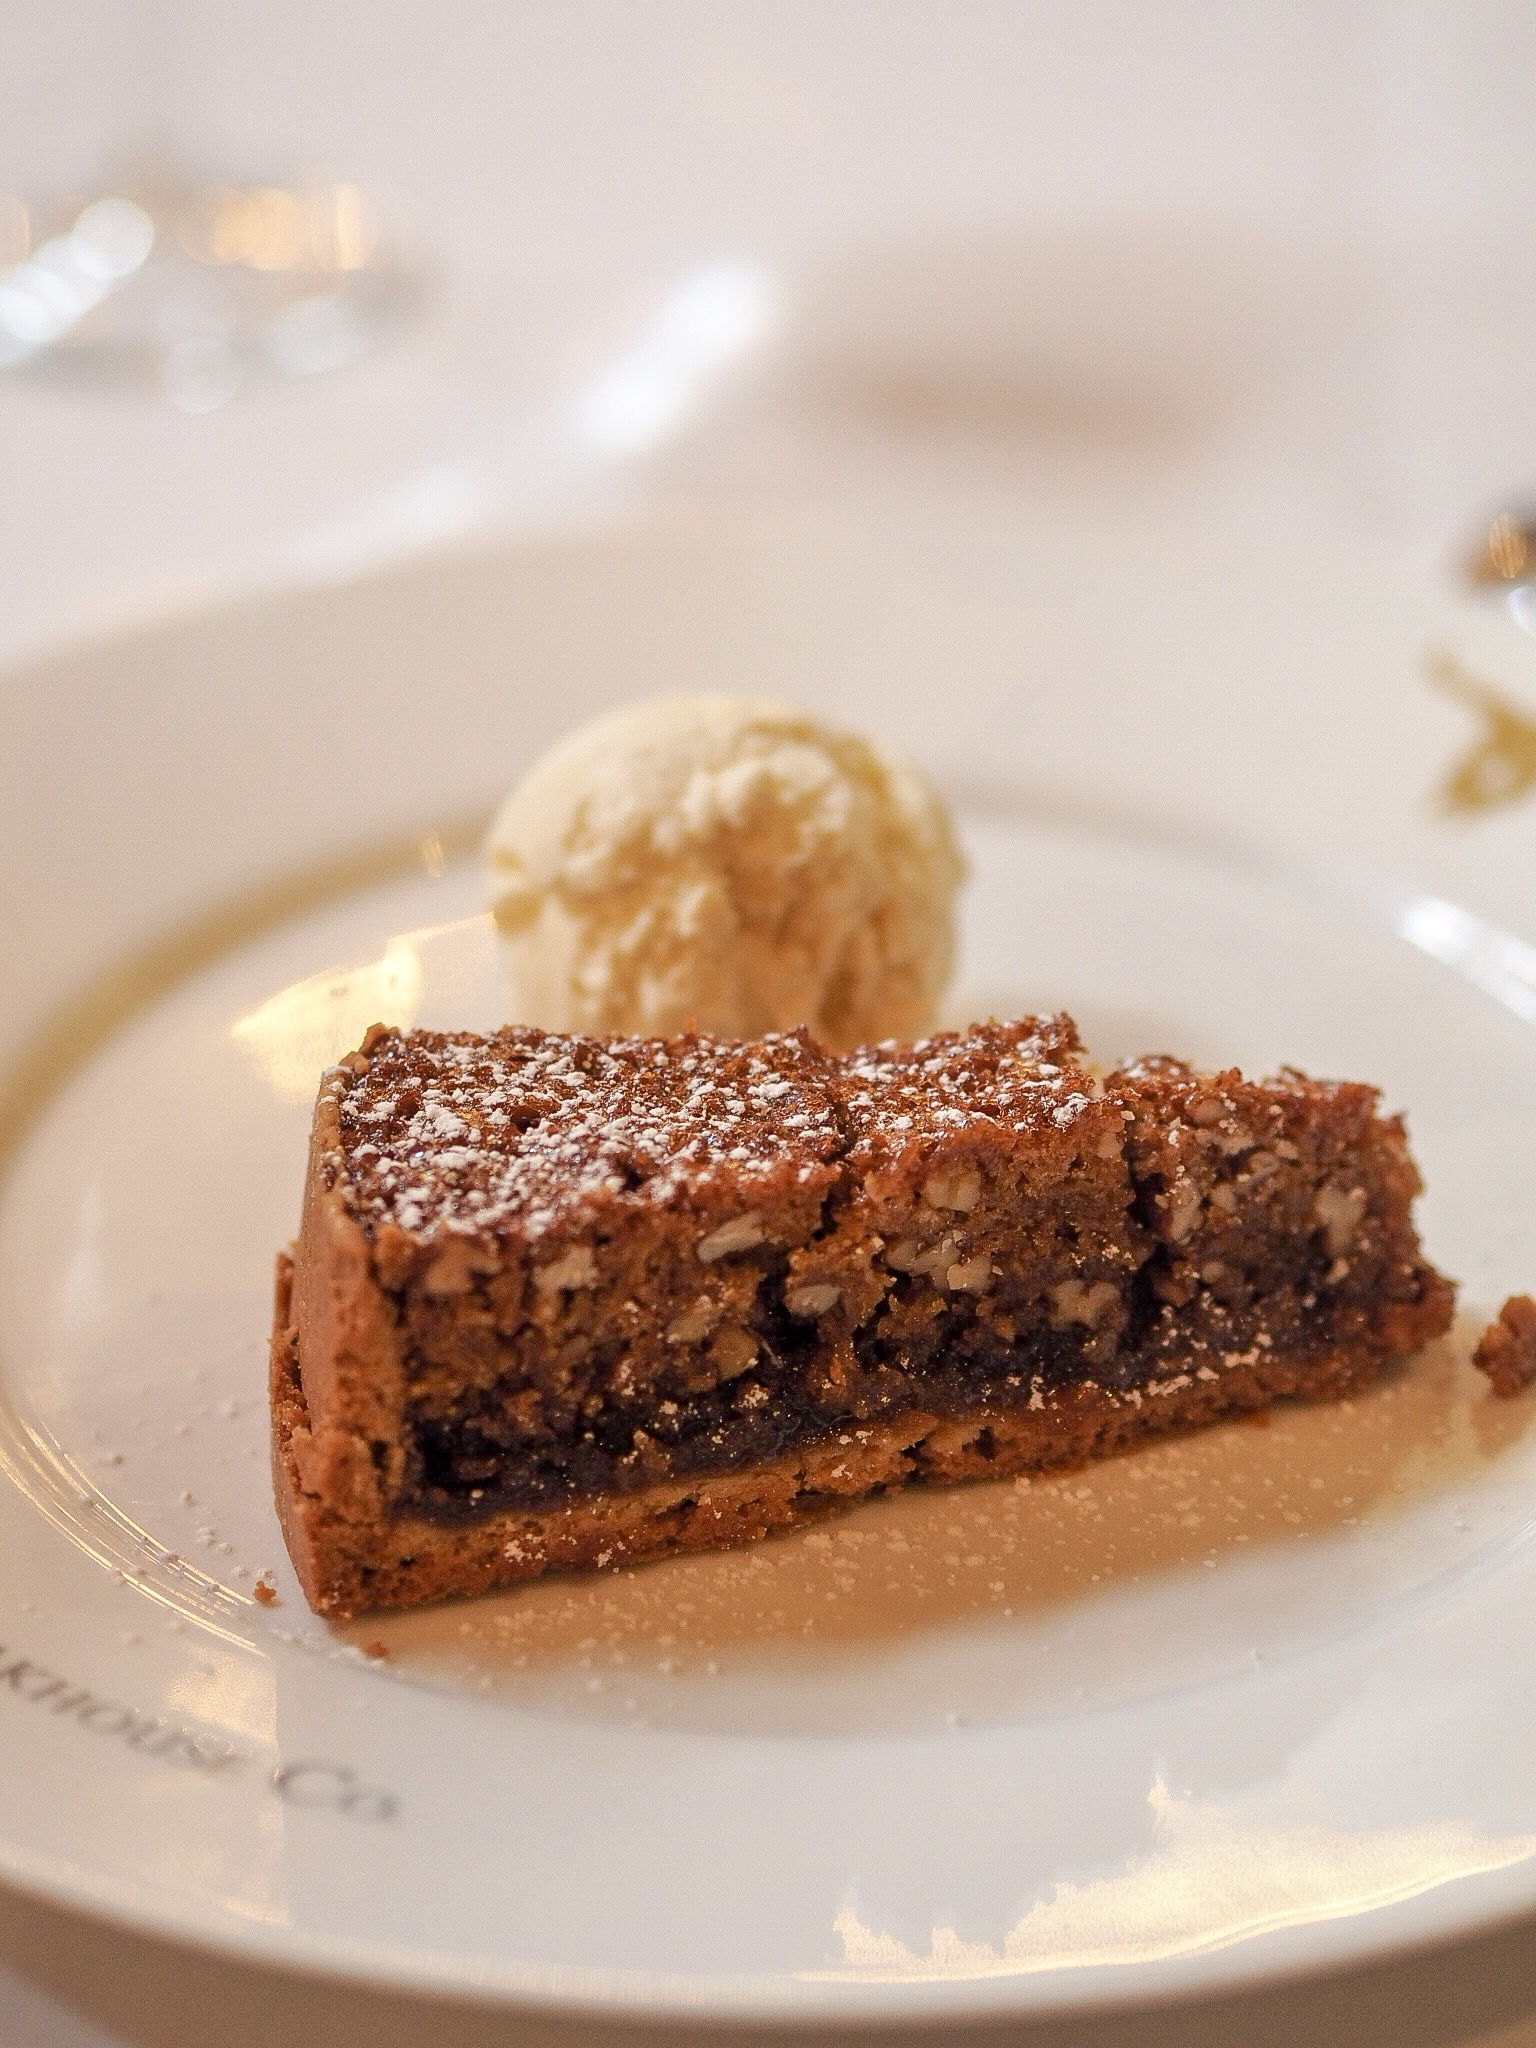 pecan pie at the london steakhouse company